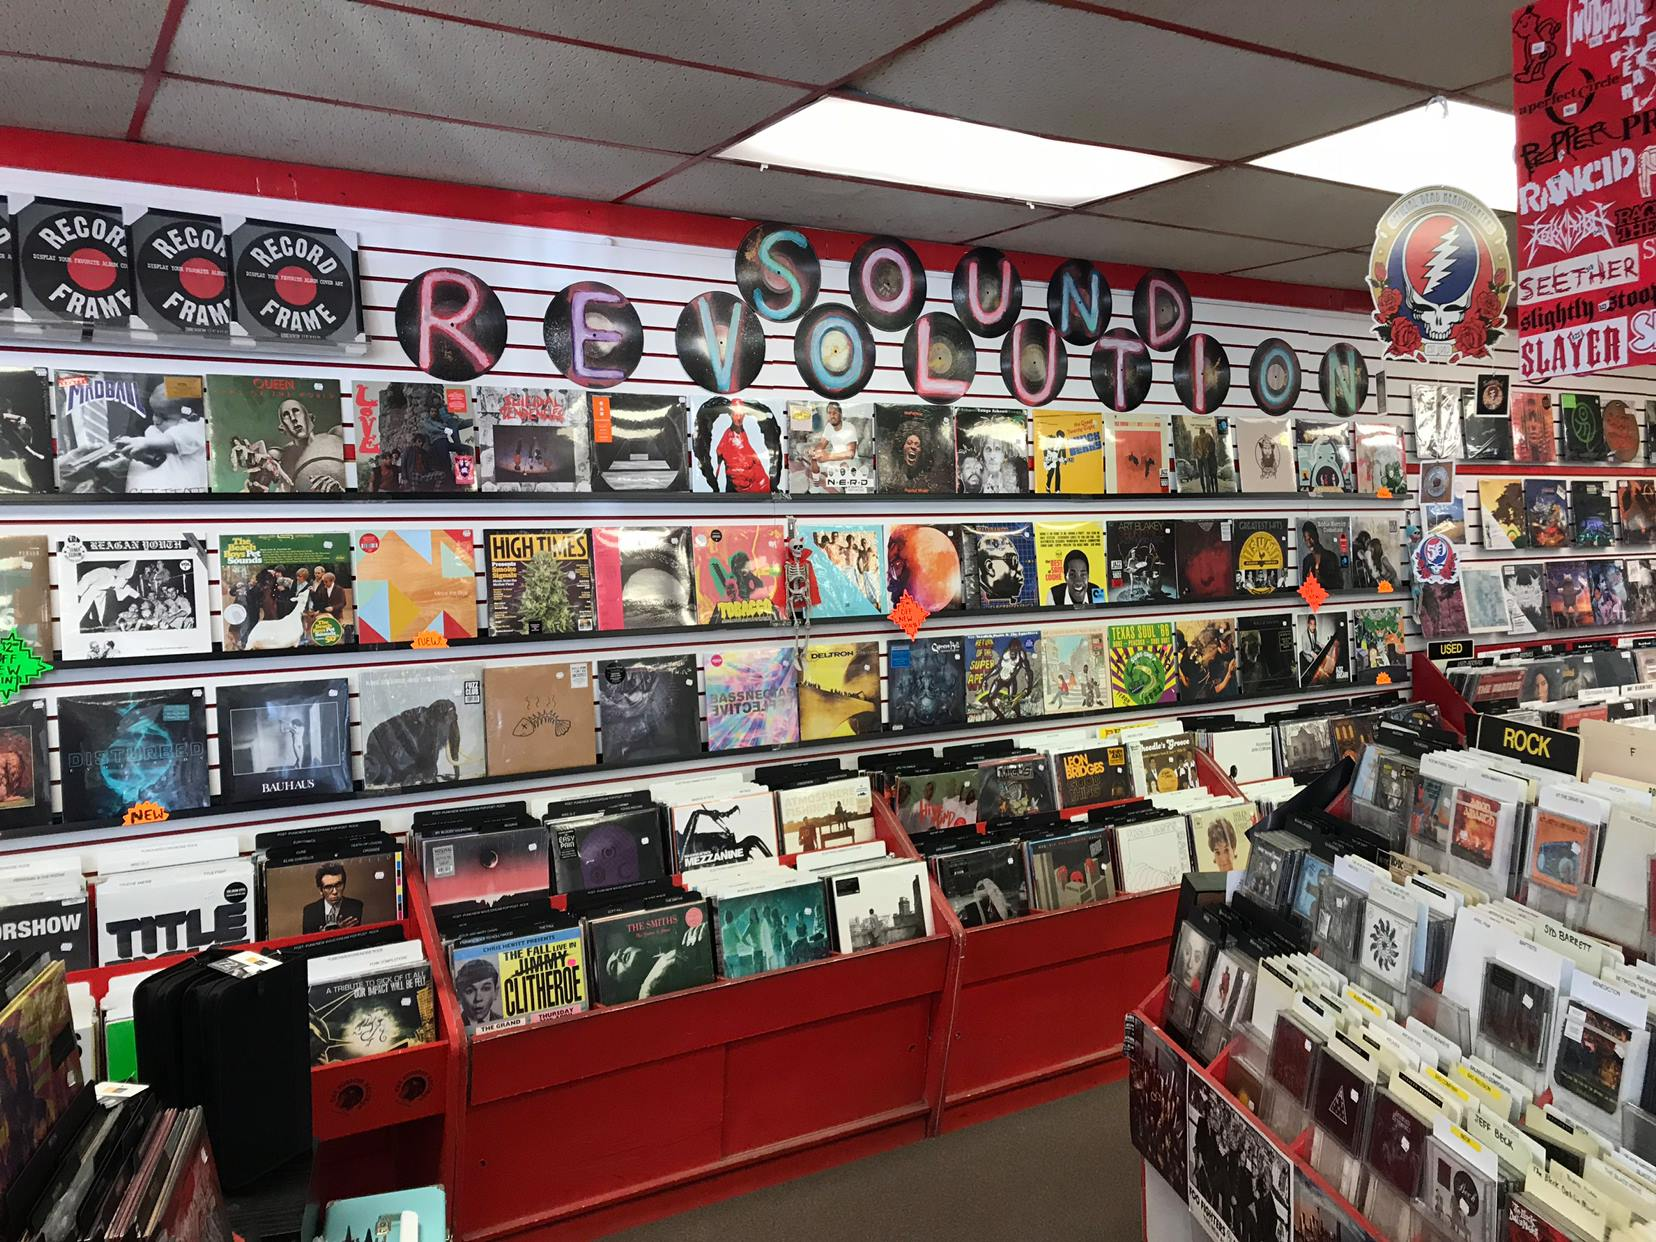 SOUND REVOLUTION (ORIGINAL) - 1312 Cypress Creek Parkway (aka FM 1960 West), Houston, TX 77090Independent, family-owned record store established in 1976; two locations with a wide variety of vinyl and CDs, vintage turntables and smoke shop related accessories.